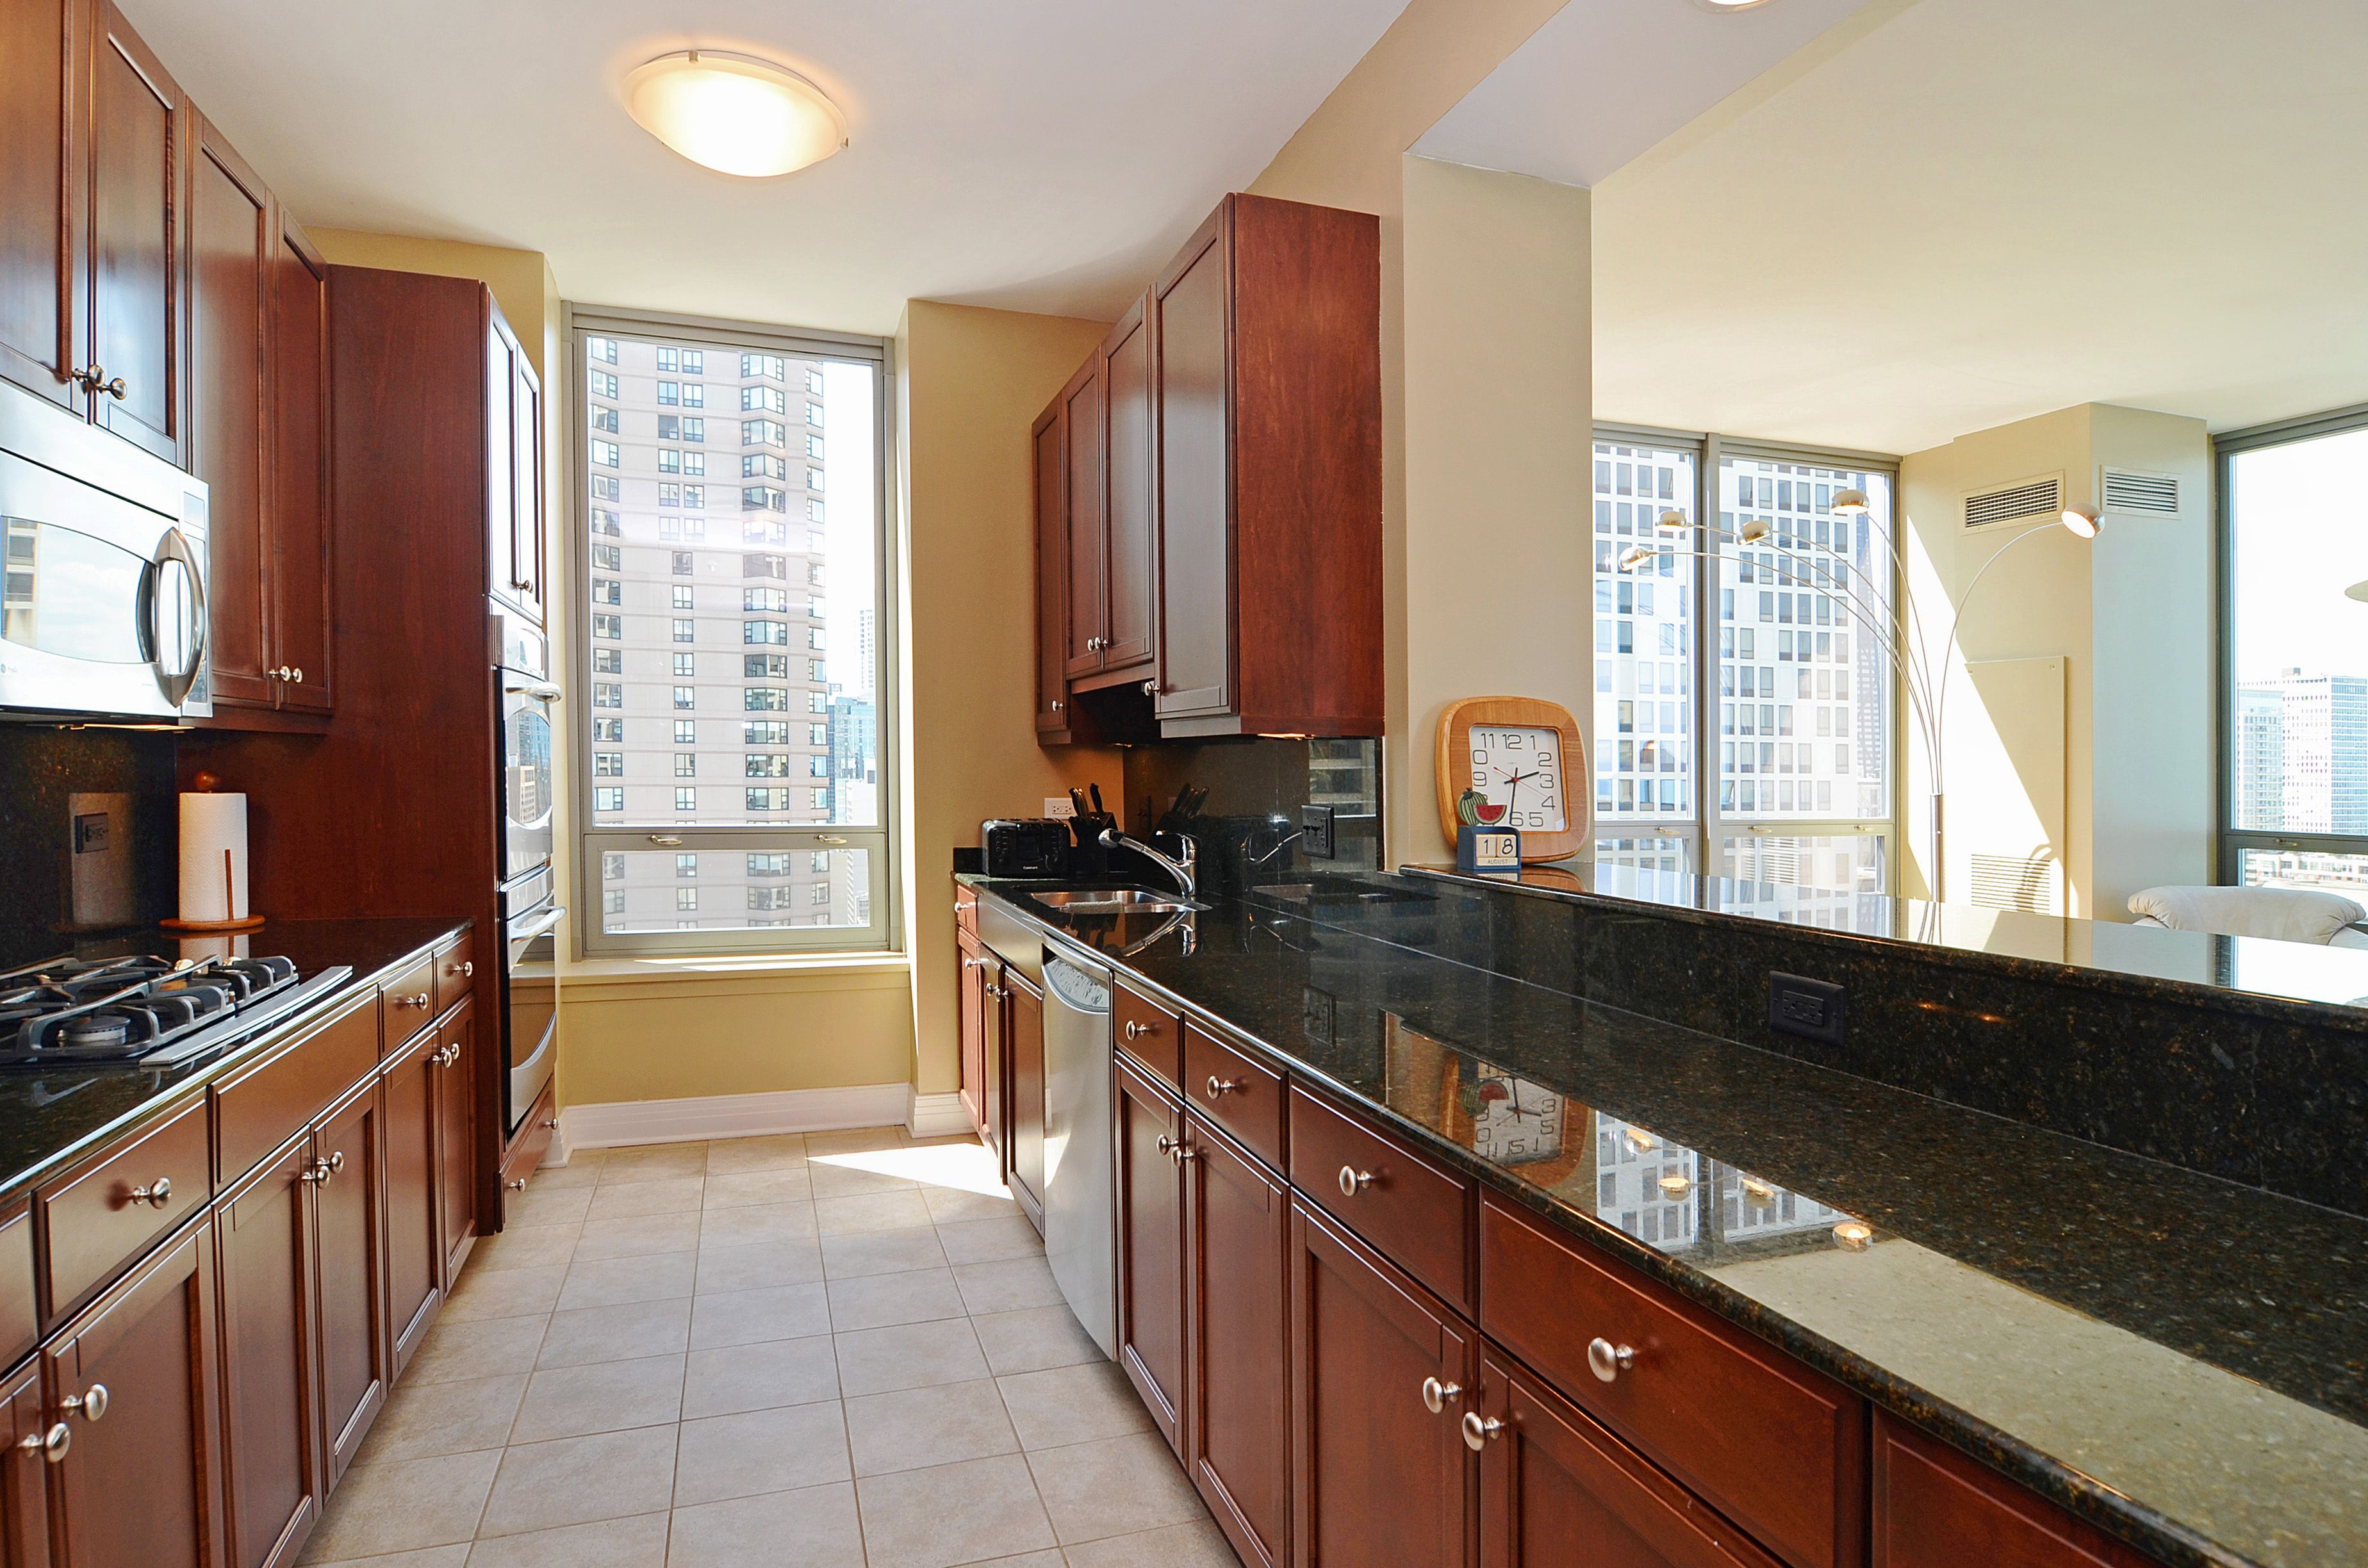 galley kitchen renovation design ideas galley kitchen remodels 17 Images About Kitchen On Plymouth Lots Of Windows